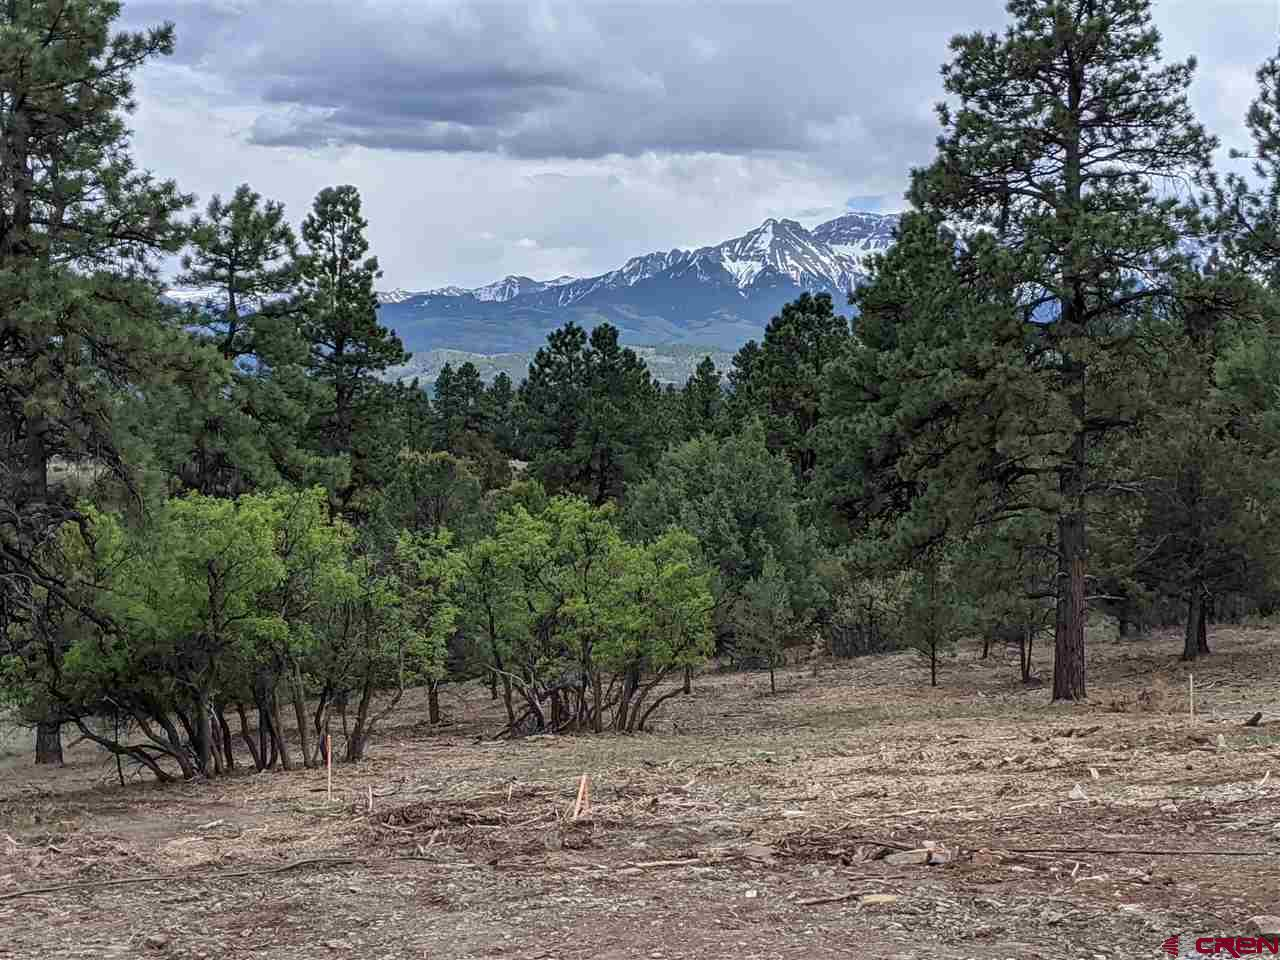 * Two Lots remaining with great views! * Four house plans to choose from * Square Footage begins at approx. 2200 sq.ft and up * Pricing begins at $519,900 and up * Call for specific details   Just what you have been waiting for! Affordable and top quality construction in the Divide Ranch Golf Community in Log Hill, Near Ridgway Colorado. There are 4 house plans to choose from, each with different pricing and square footage.  There is an option for walk out basement instead of two story.   The Homes are finished with Granite or Quartz counter tops throughout, Partial Carpet and Vinyl Plank Flooring and Tile.  Stainless appliances including Refrigerator, Range/oven, Microwave, disposal and Dishwasher.  Exterior is Stucco/Stone.  There are a total of four units in this Planned Unit Development in The Divide Golf Community.  They have shared driveways between 2 homes.  Each Home has its own septic and it is Dallas Creek Water.    There are excellent Mountain views and some views of the golf course.  There is a golf Membership included with a transfer fee paid by the Buyer of $3,000 at closing.  The homes are completed within 7 months of Permit being issued.  Located is 10 min from Ridgway, 20 min to Ouray and The Hot springs, and 45 min to World class Skiing in Telluride and you can enjoy the Summer Season in alll of the same areas. Live and Play all year round living in the heart of the San Juan Mountains.